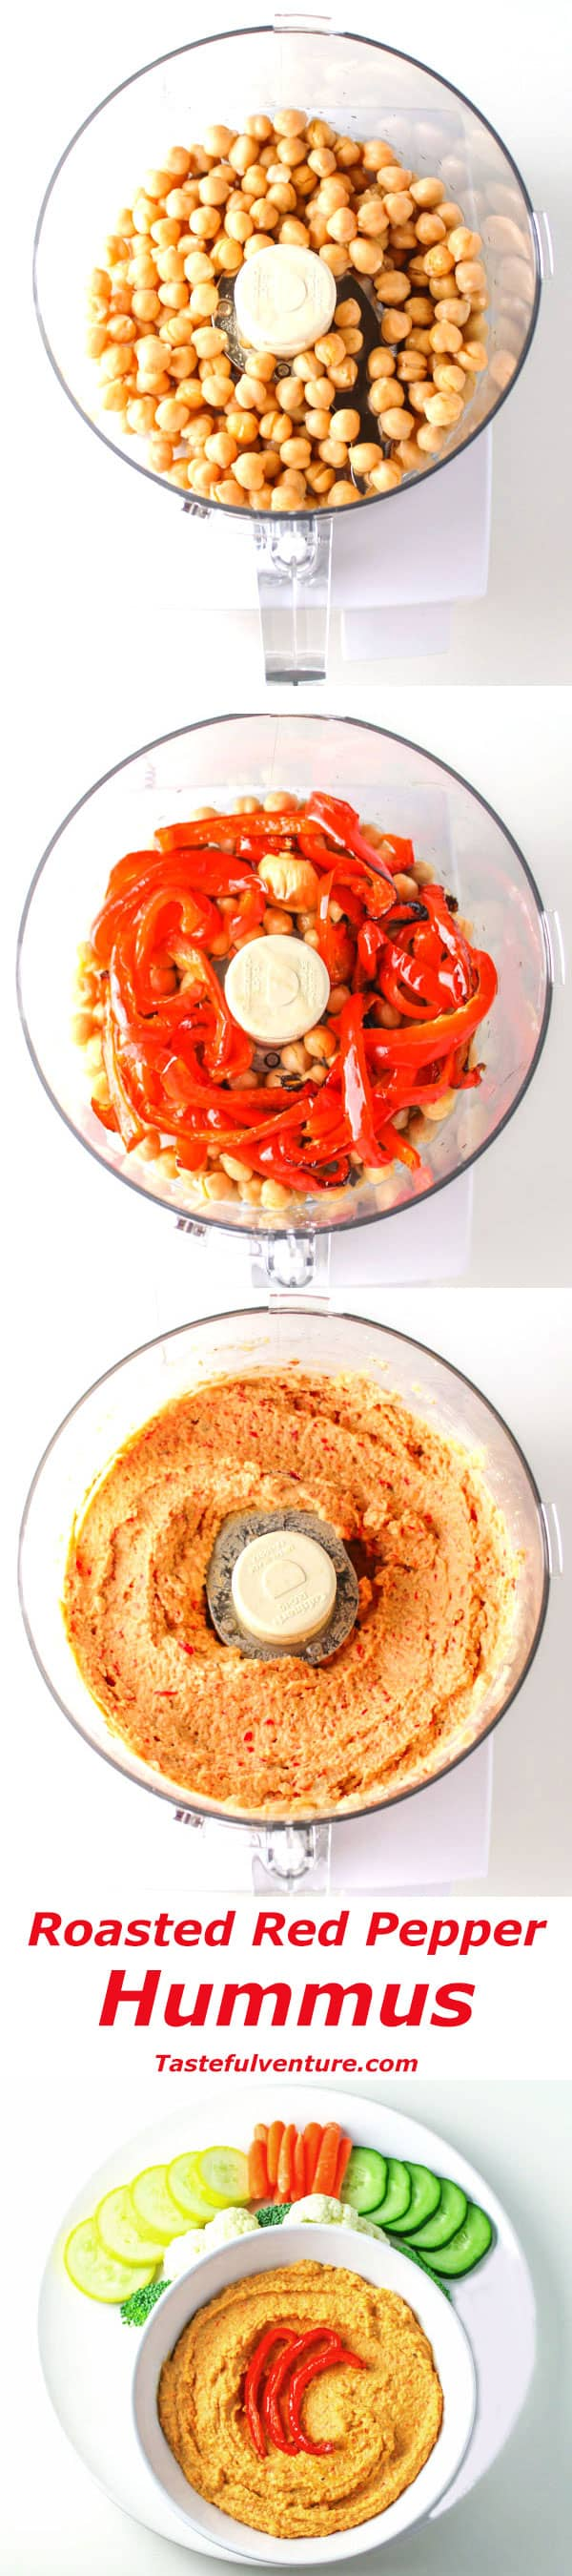 Easy Roasted Red Pepper Hummus, perfect for any party, and it's Gluten Free! | Tastefulventure.com